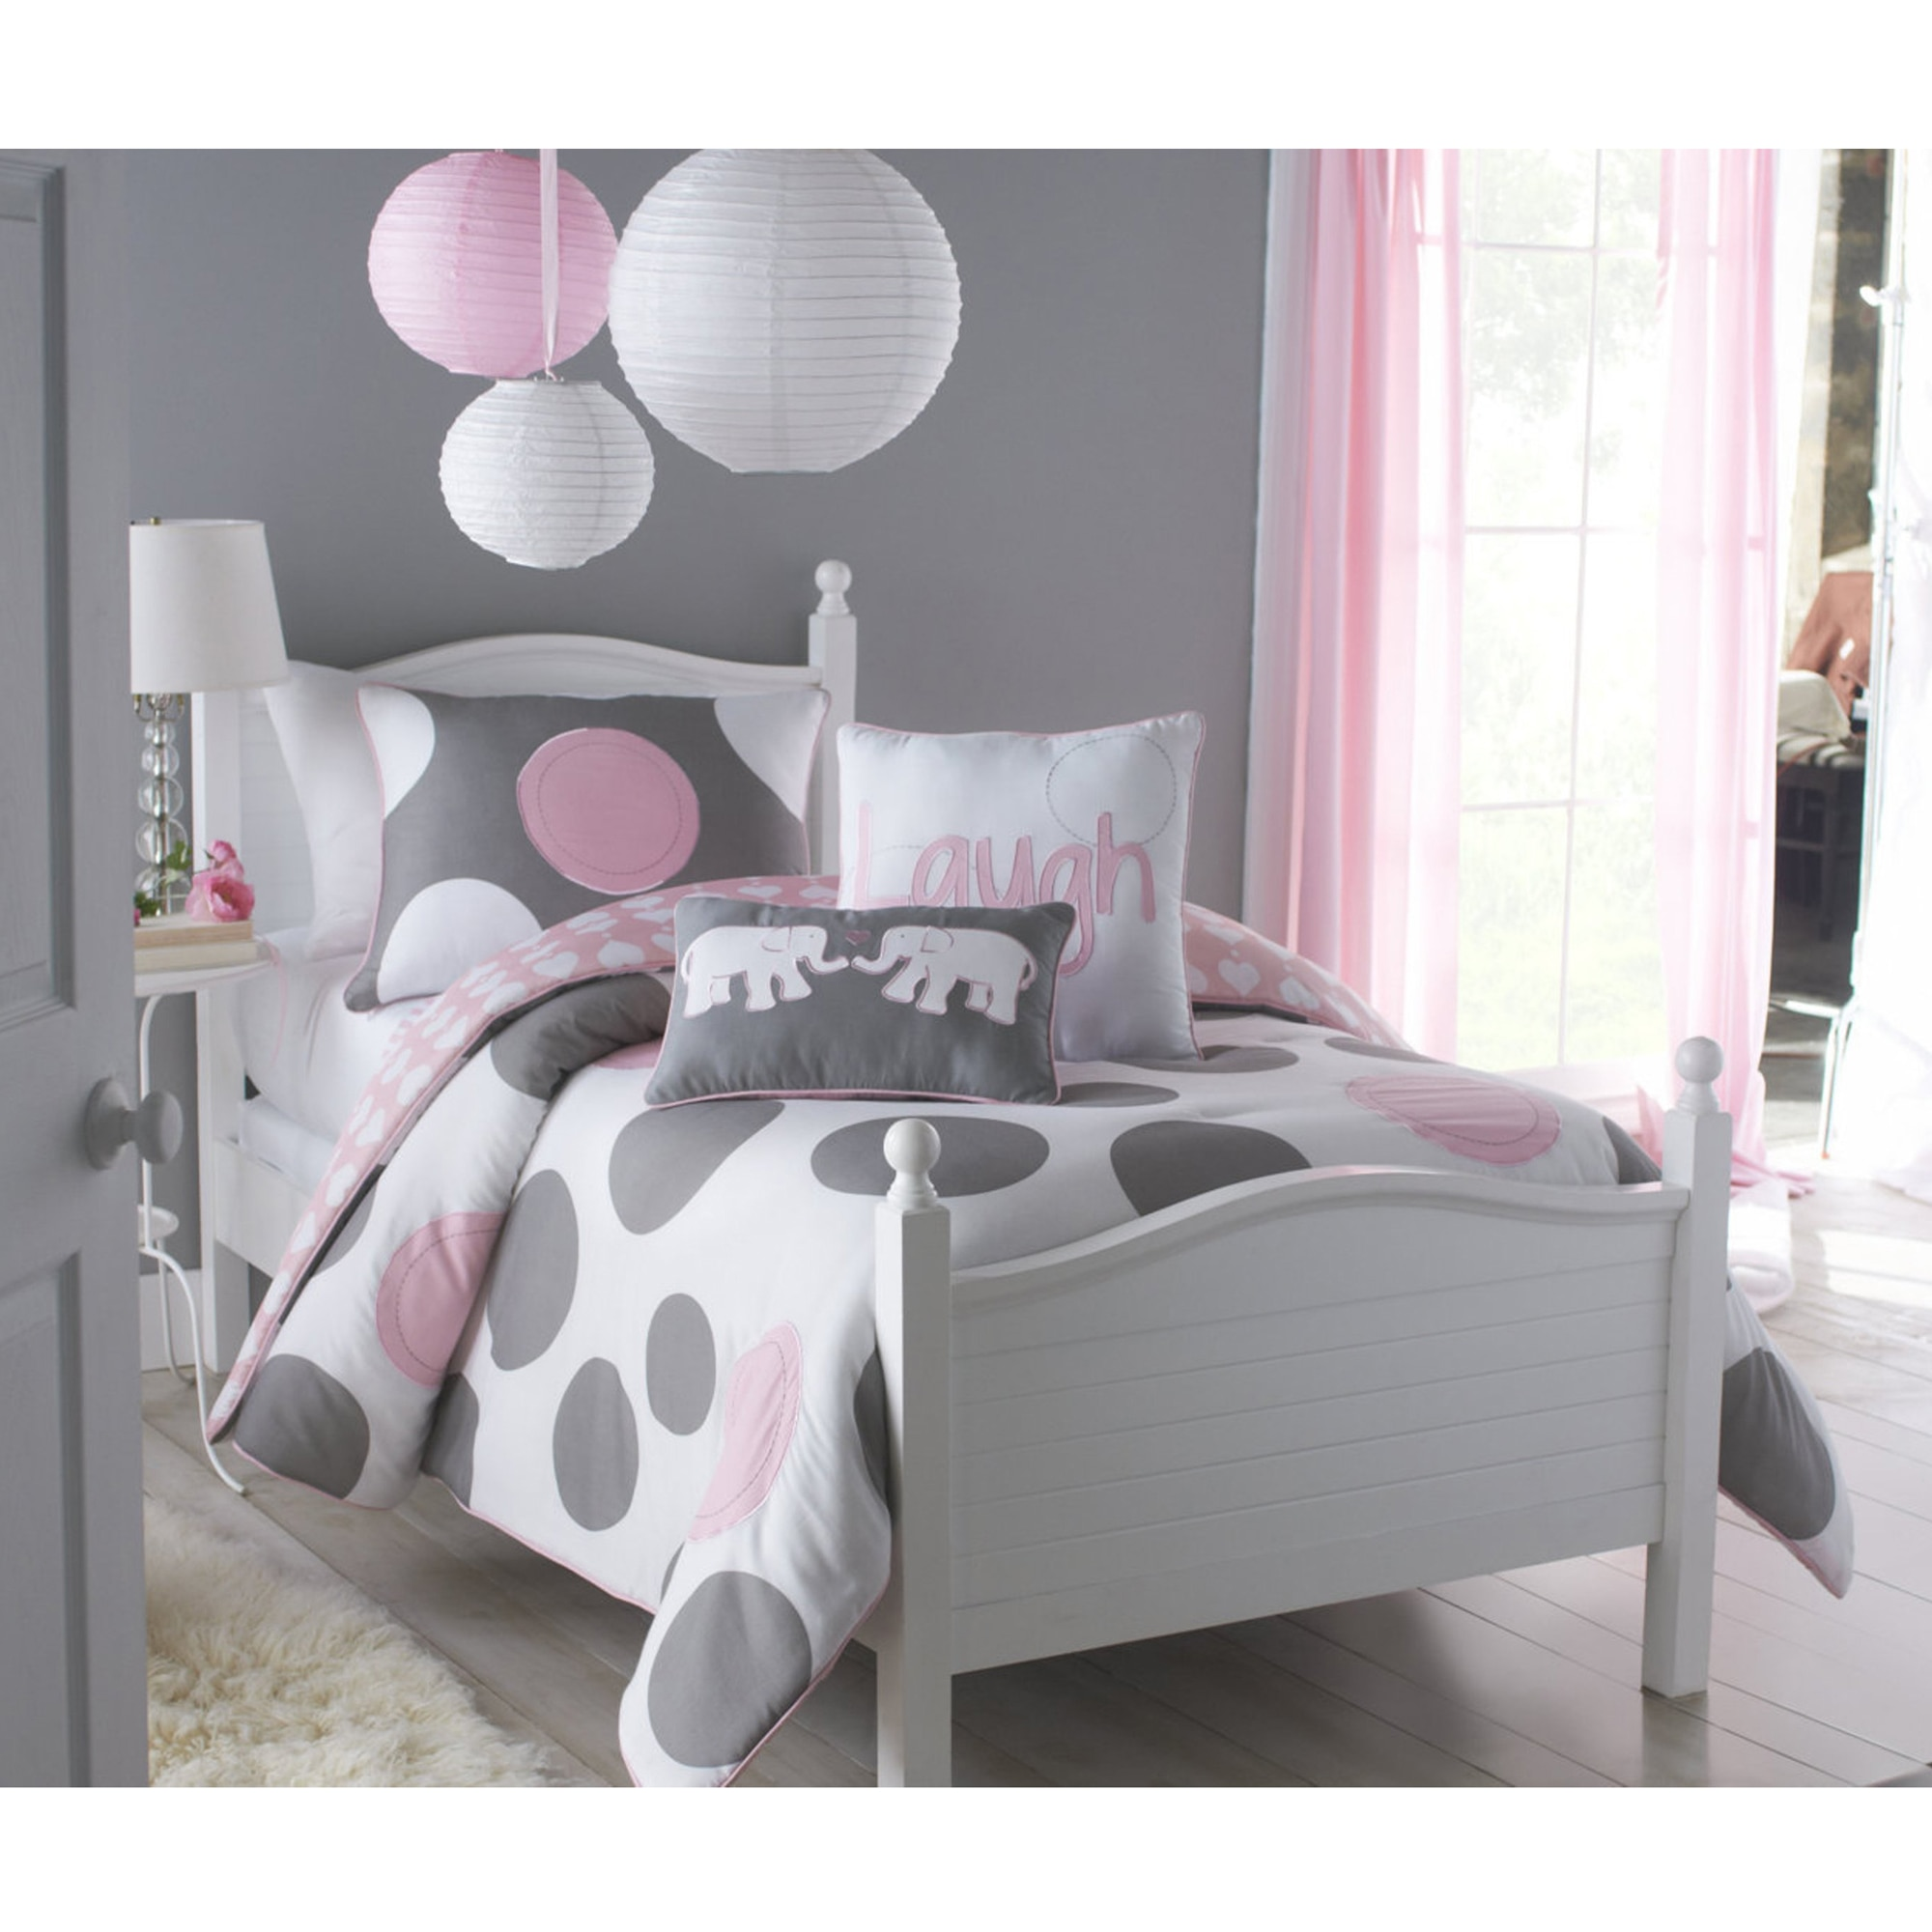 comforter bedding set pink and gray polka dot 3 piece kids bedding set twin size ebay. Black Bedroom Furniture Sets. Home Design Ideas